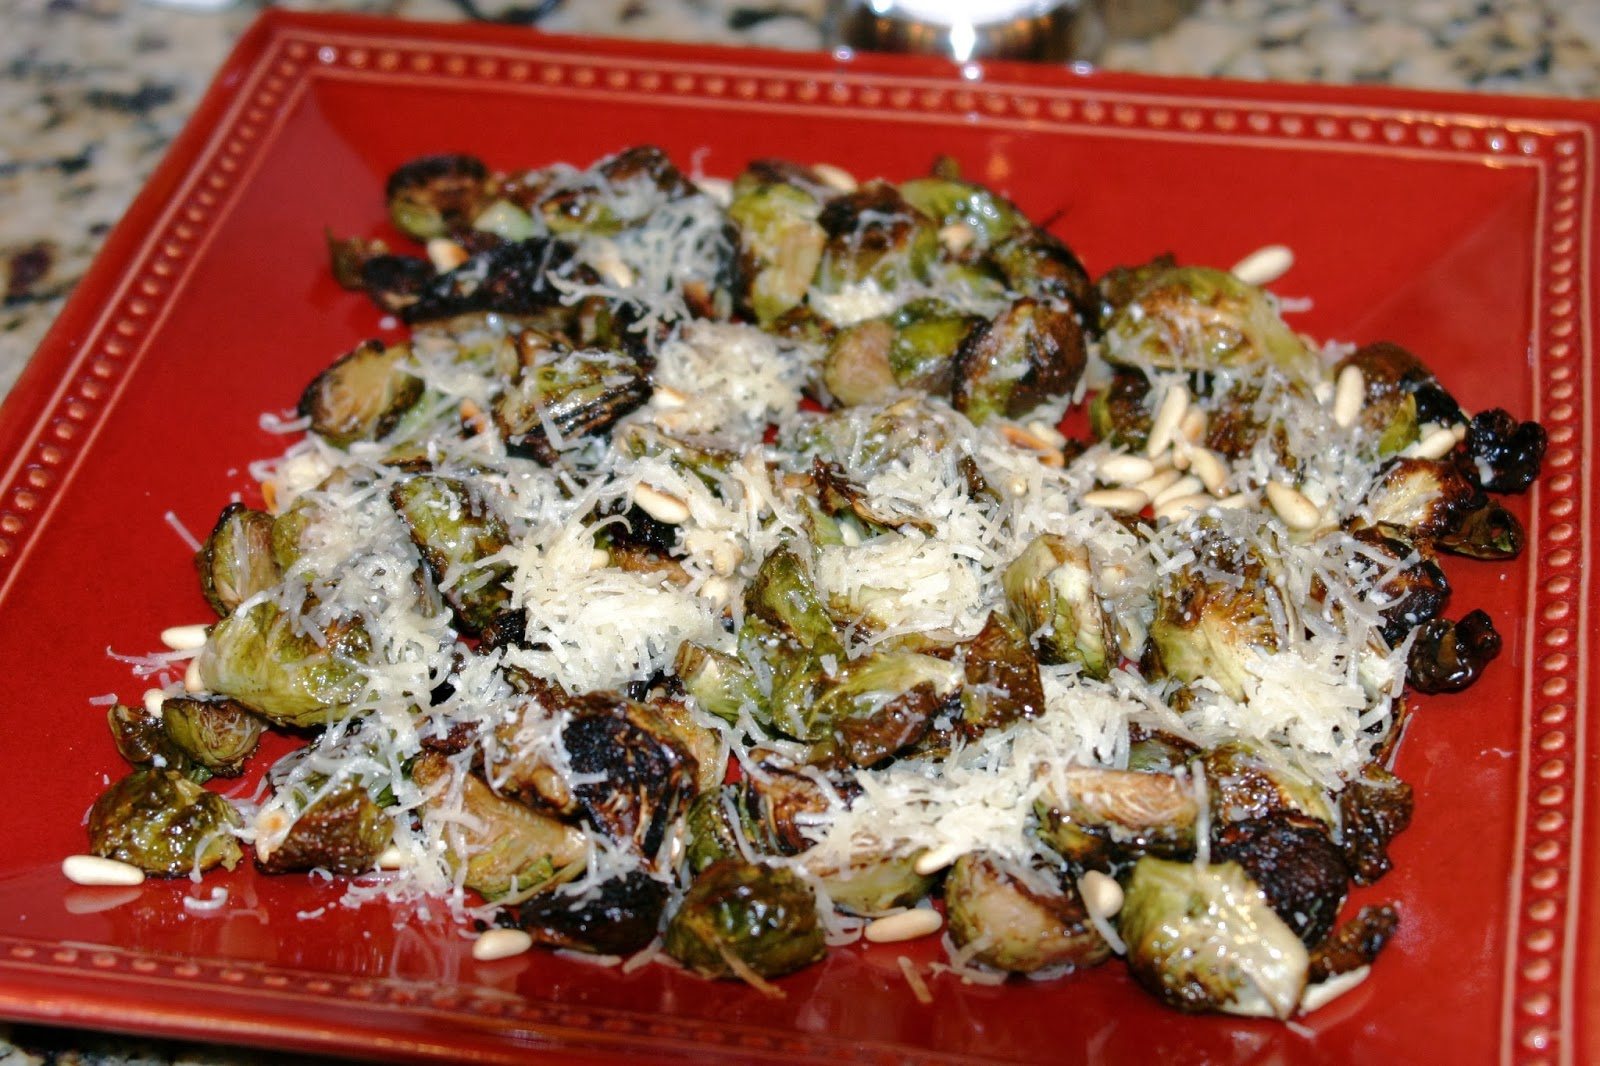 ... Brussels Sprouts with Caramelized Onions, Crispy Bacon, and Pine Nuts